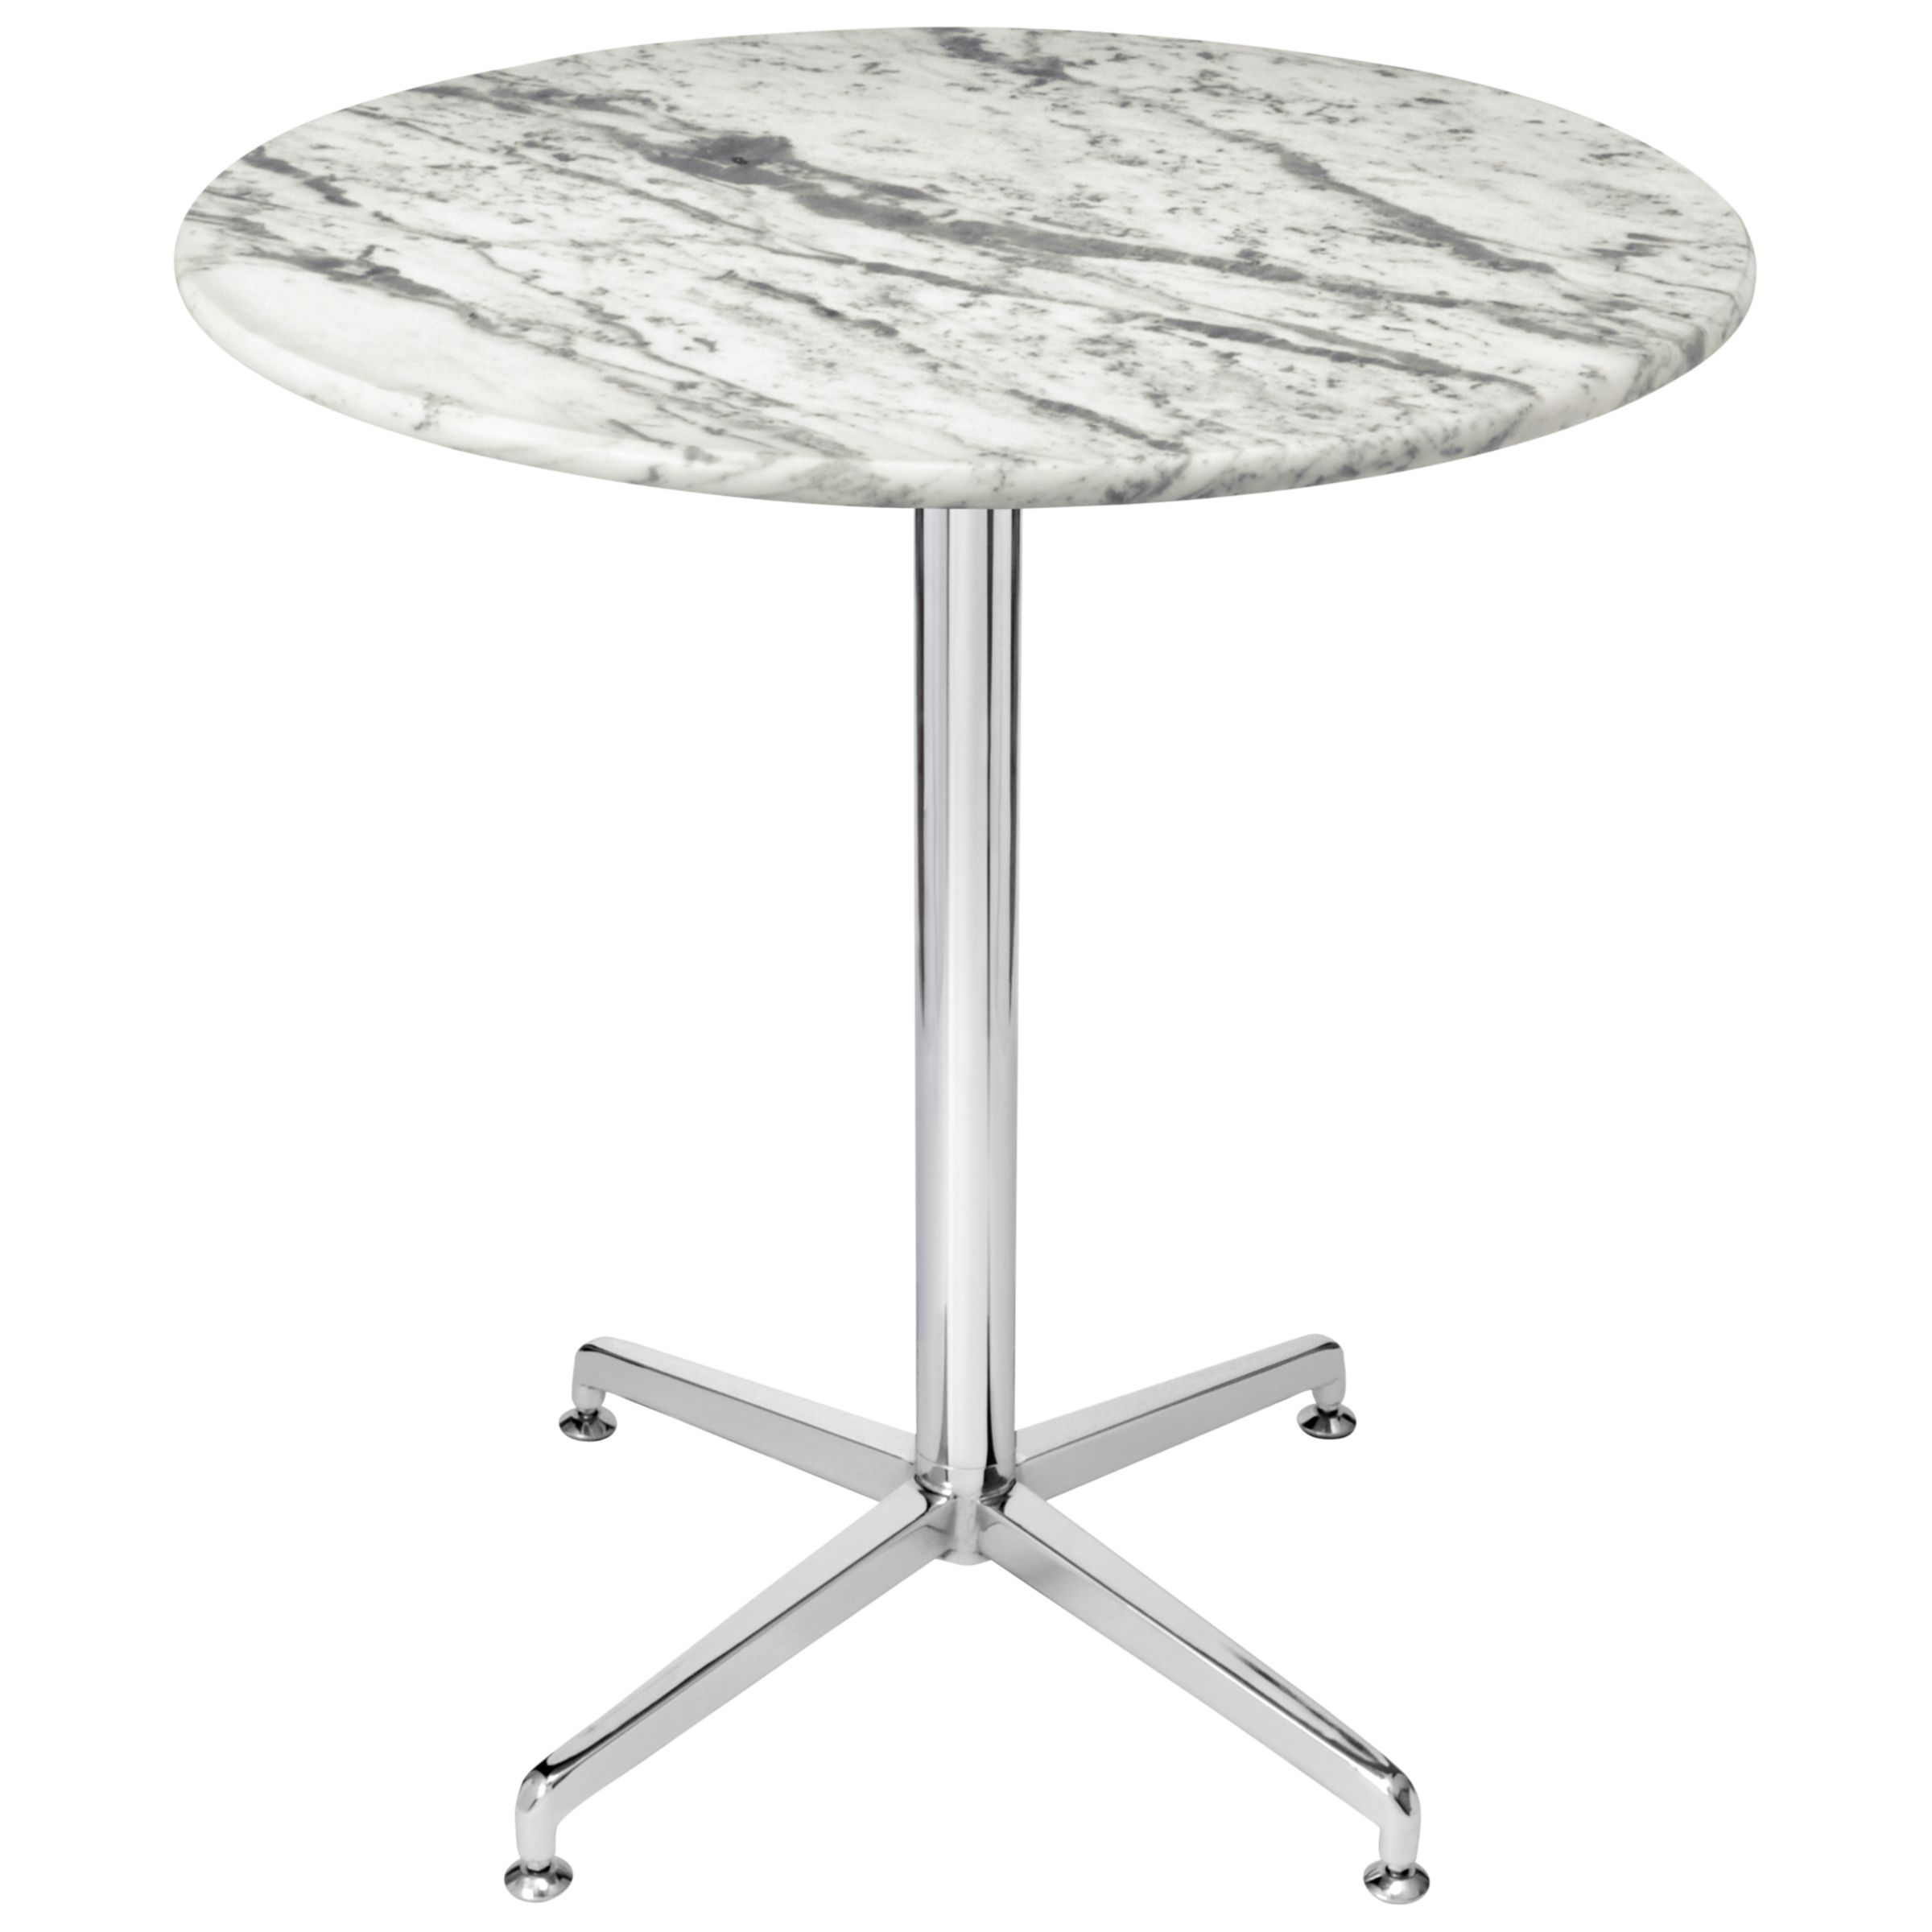 HND HND Brigitte 4 Seater Marble Dining Table